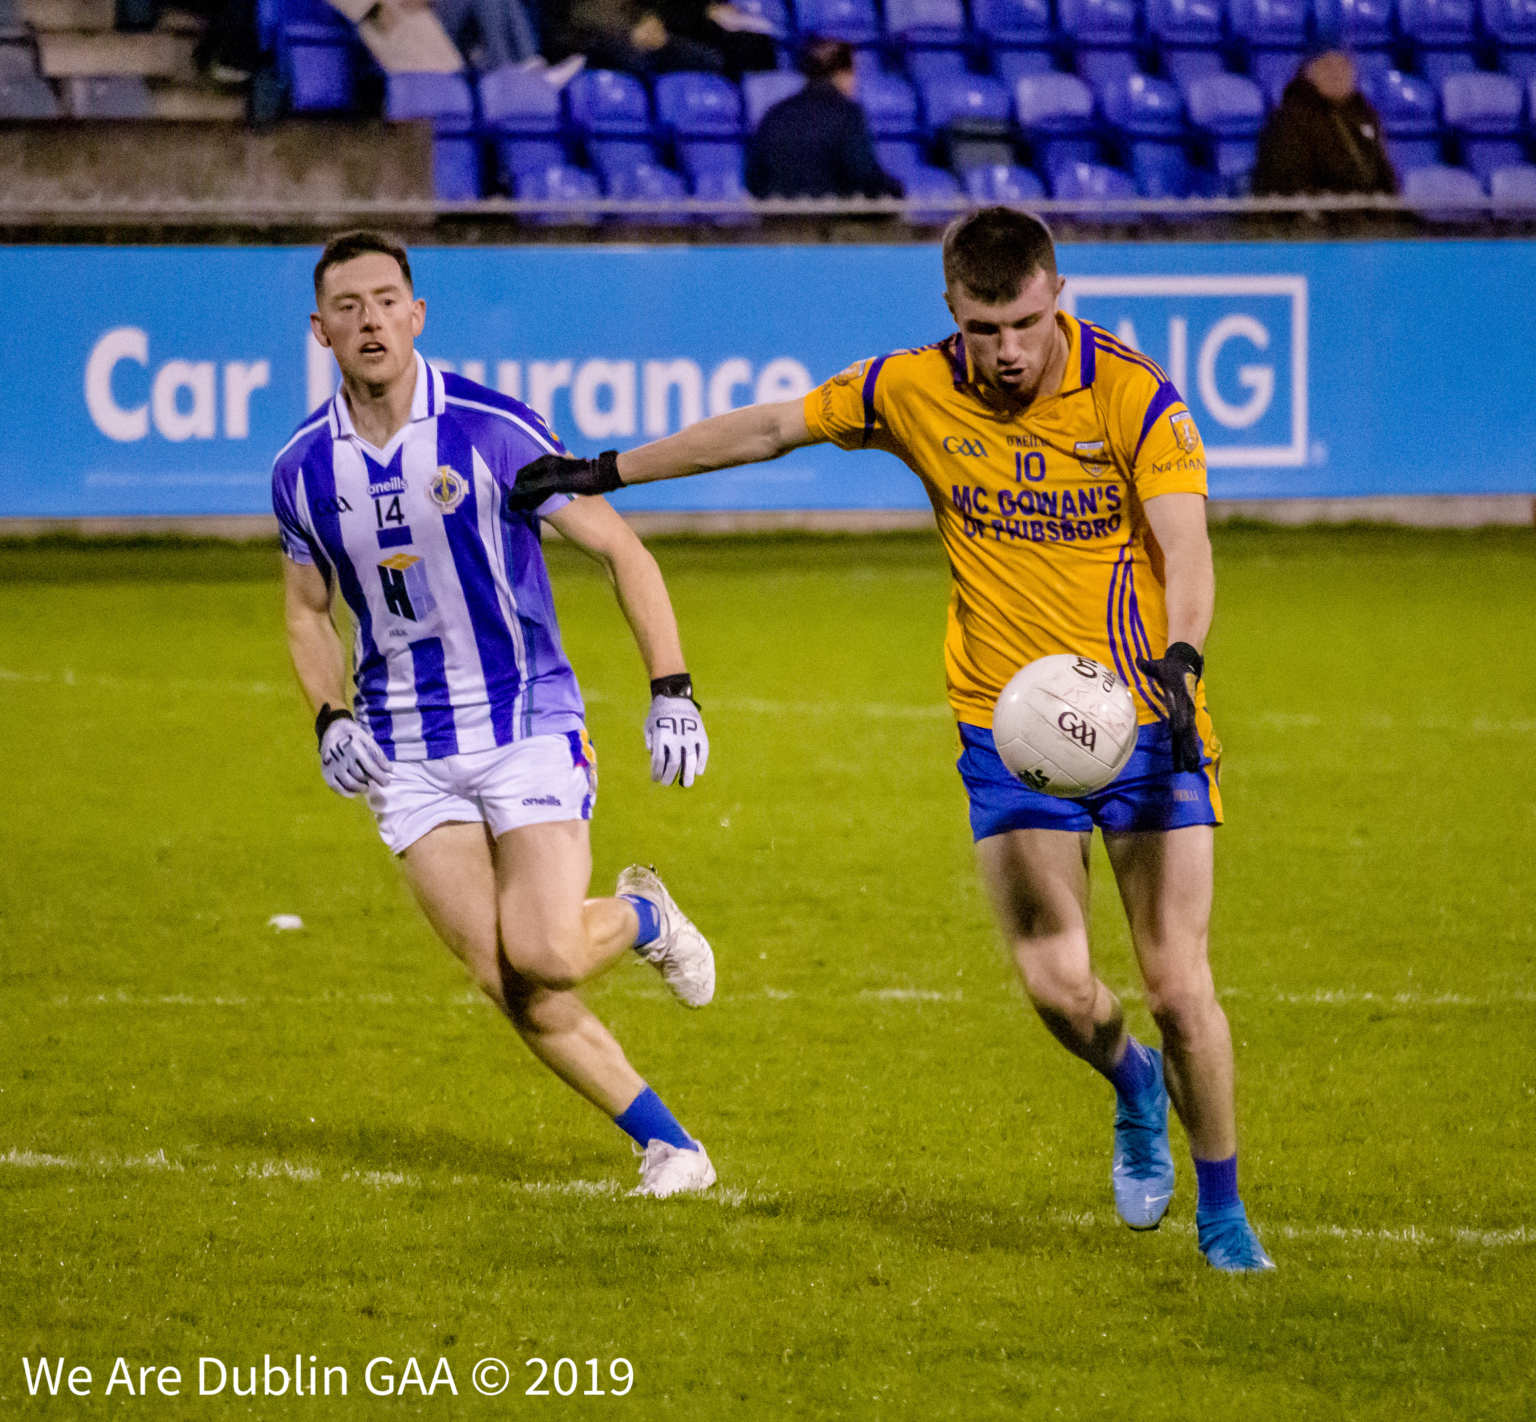 A Ballyboden St Endas Player watches on as a Na Fianna player takes a shot at goal in the Dublin SFC, Ballyboden won thanks to goals from Colm Basquel